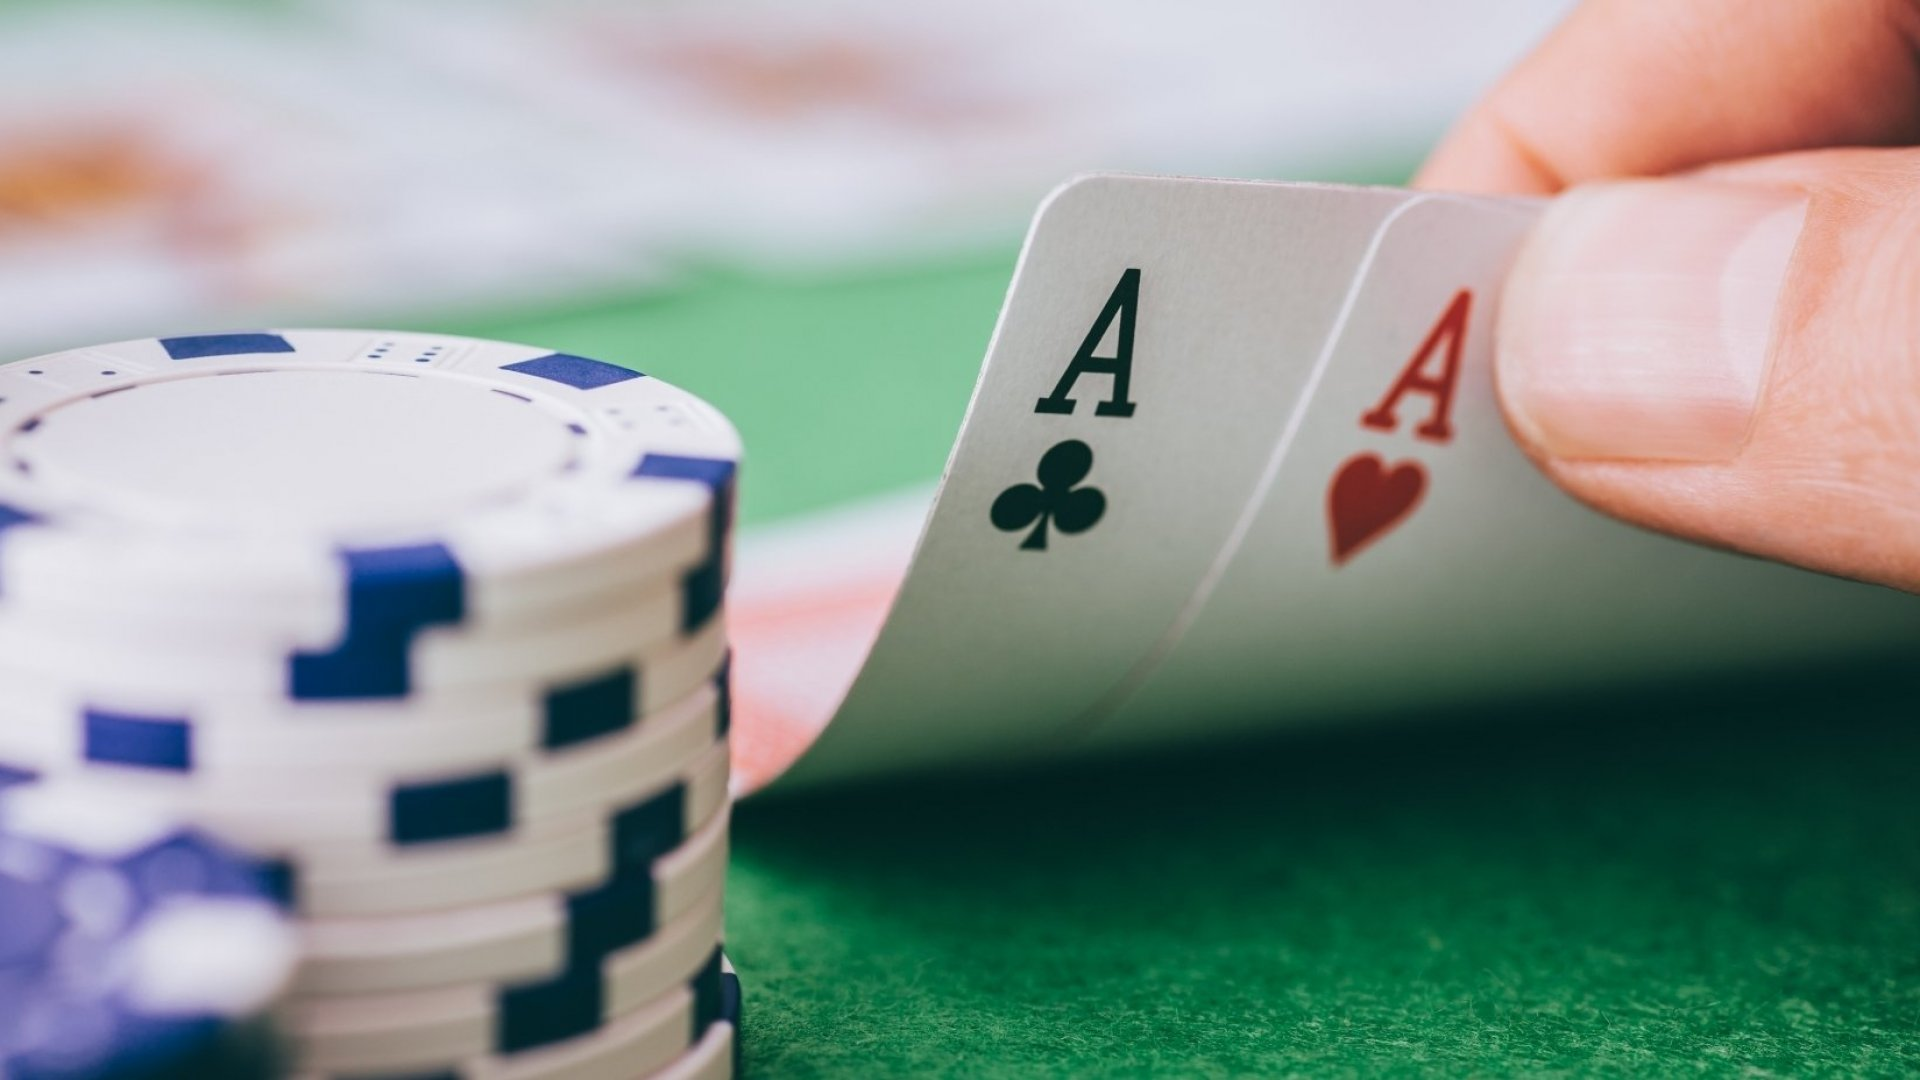 This Writer Decided to Learn About Poker. Now She's Won So Much Money She's Delayed the Book